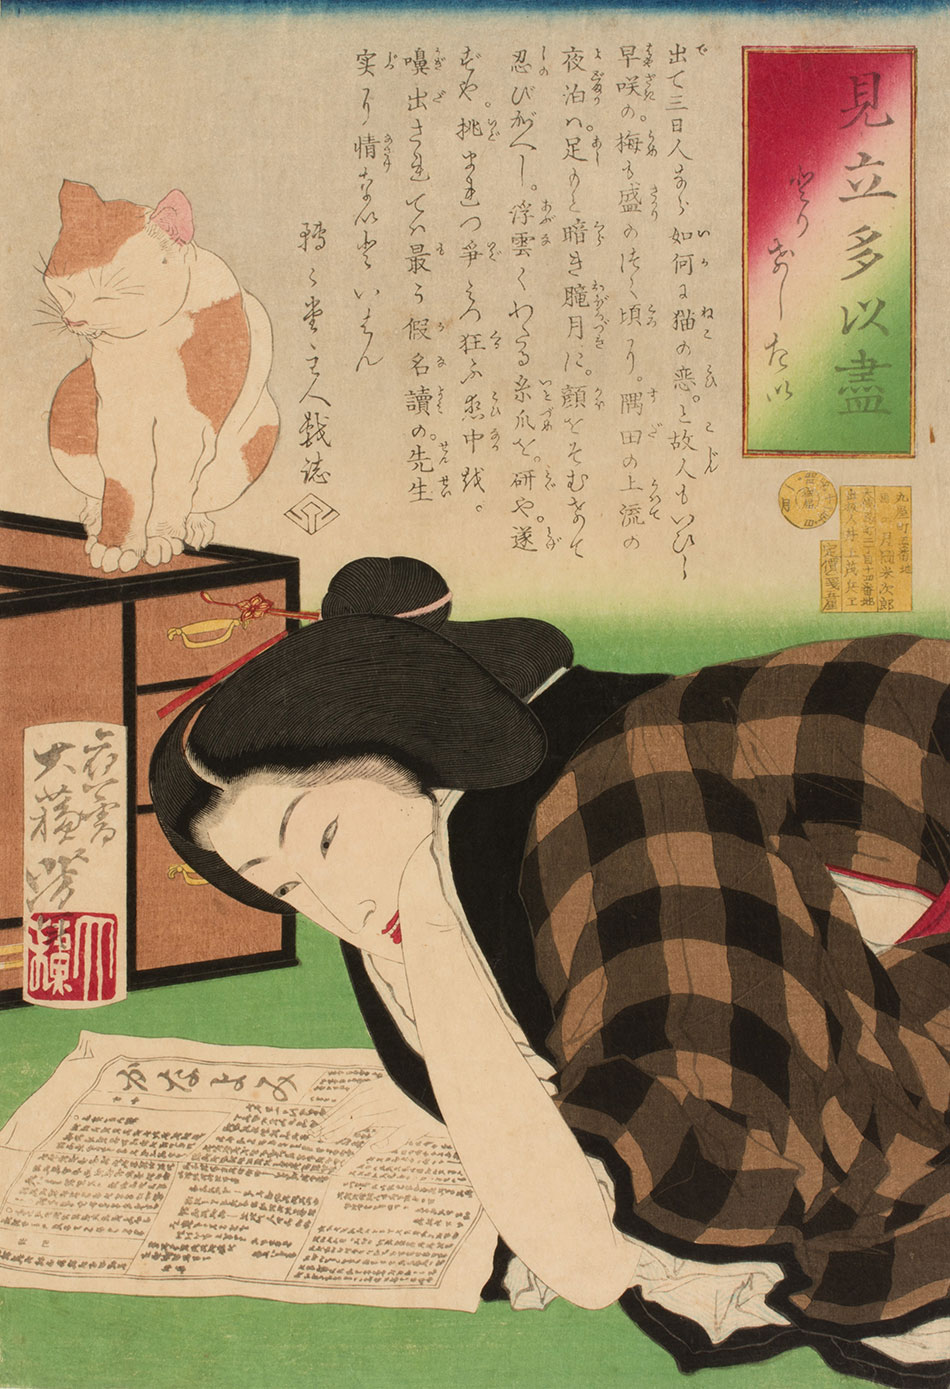 I-Want-to-Cancel-My-Subscription;-Woman-Reading-Newspaper,-from-the-series-A-Collection-of-Desires_by-Tsukioka-Yoshitoshi_Philadelphia-Museum-of-Art_950-W